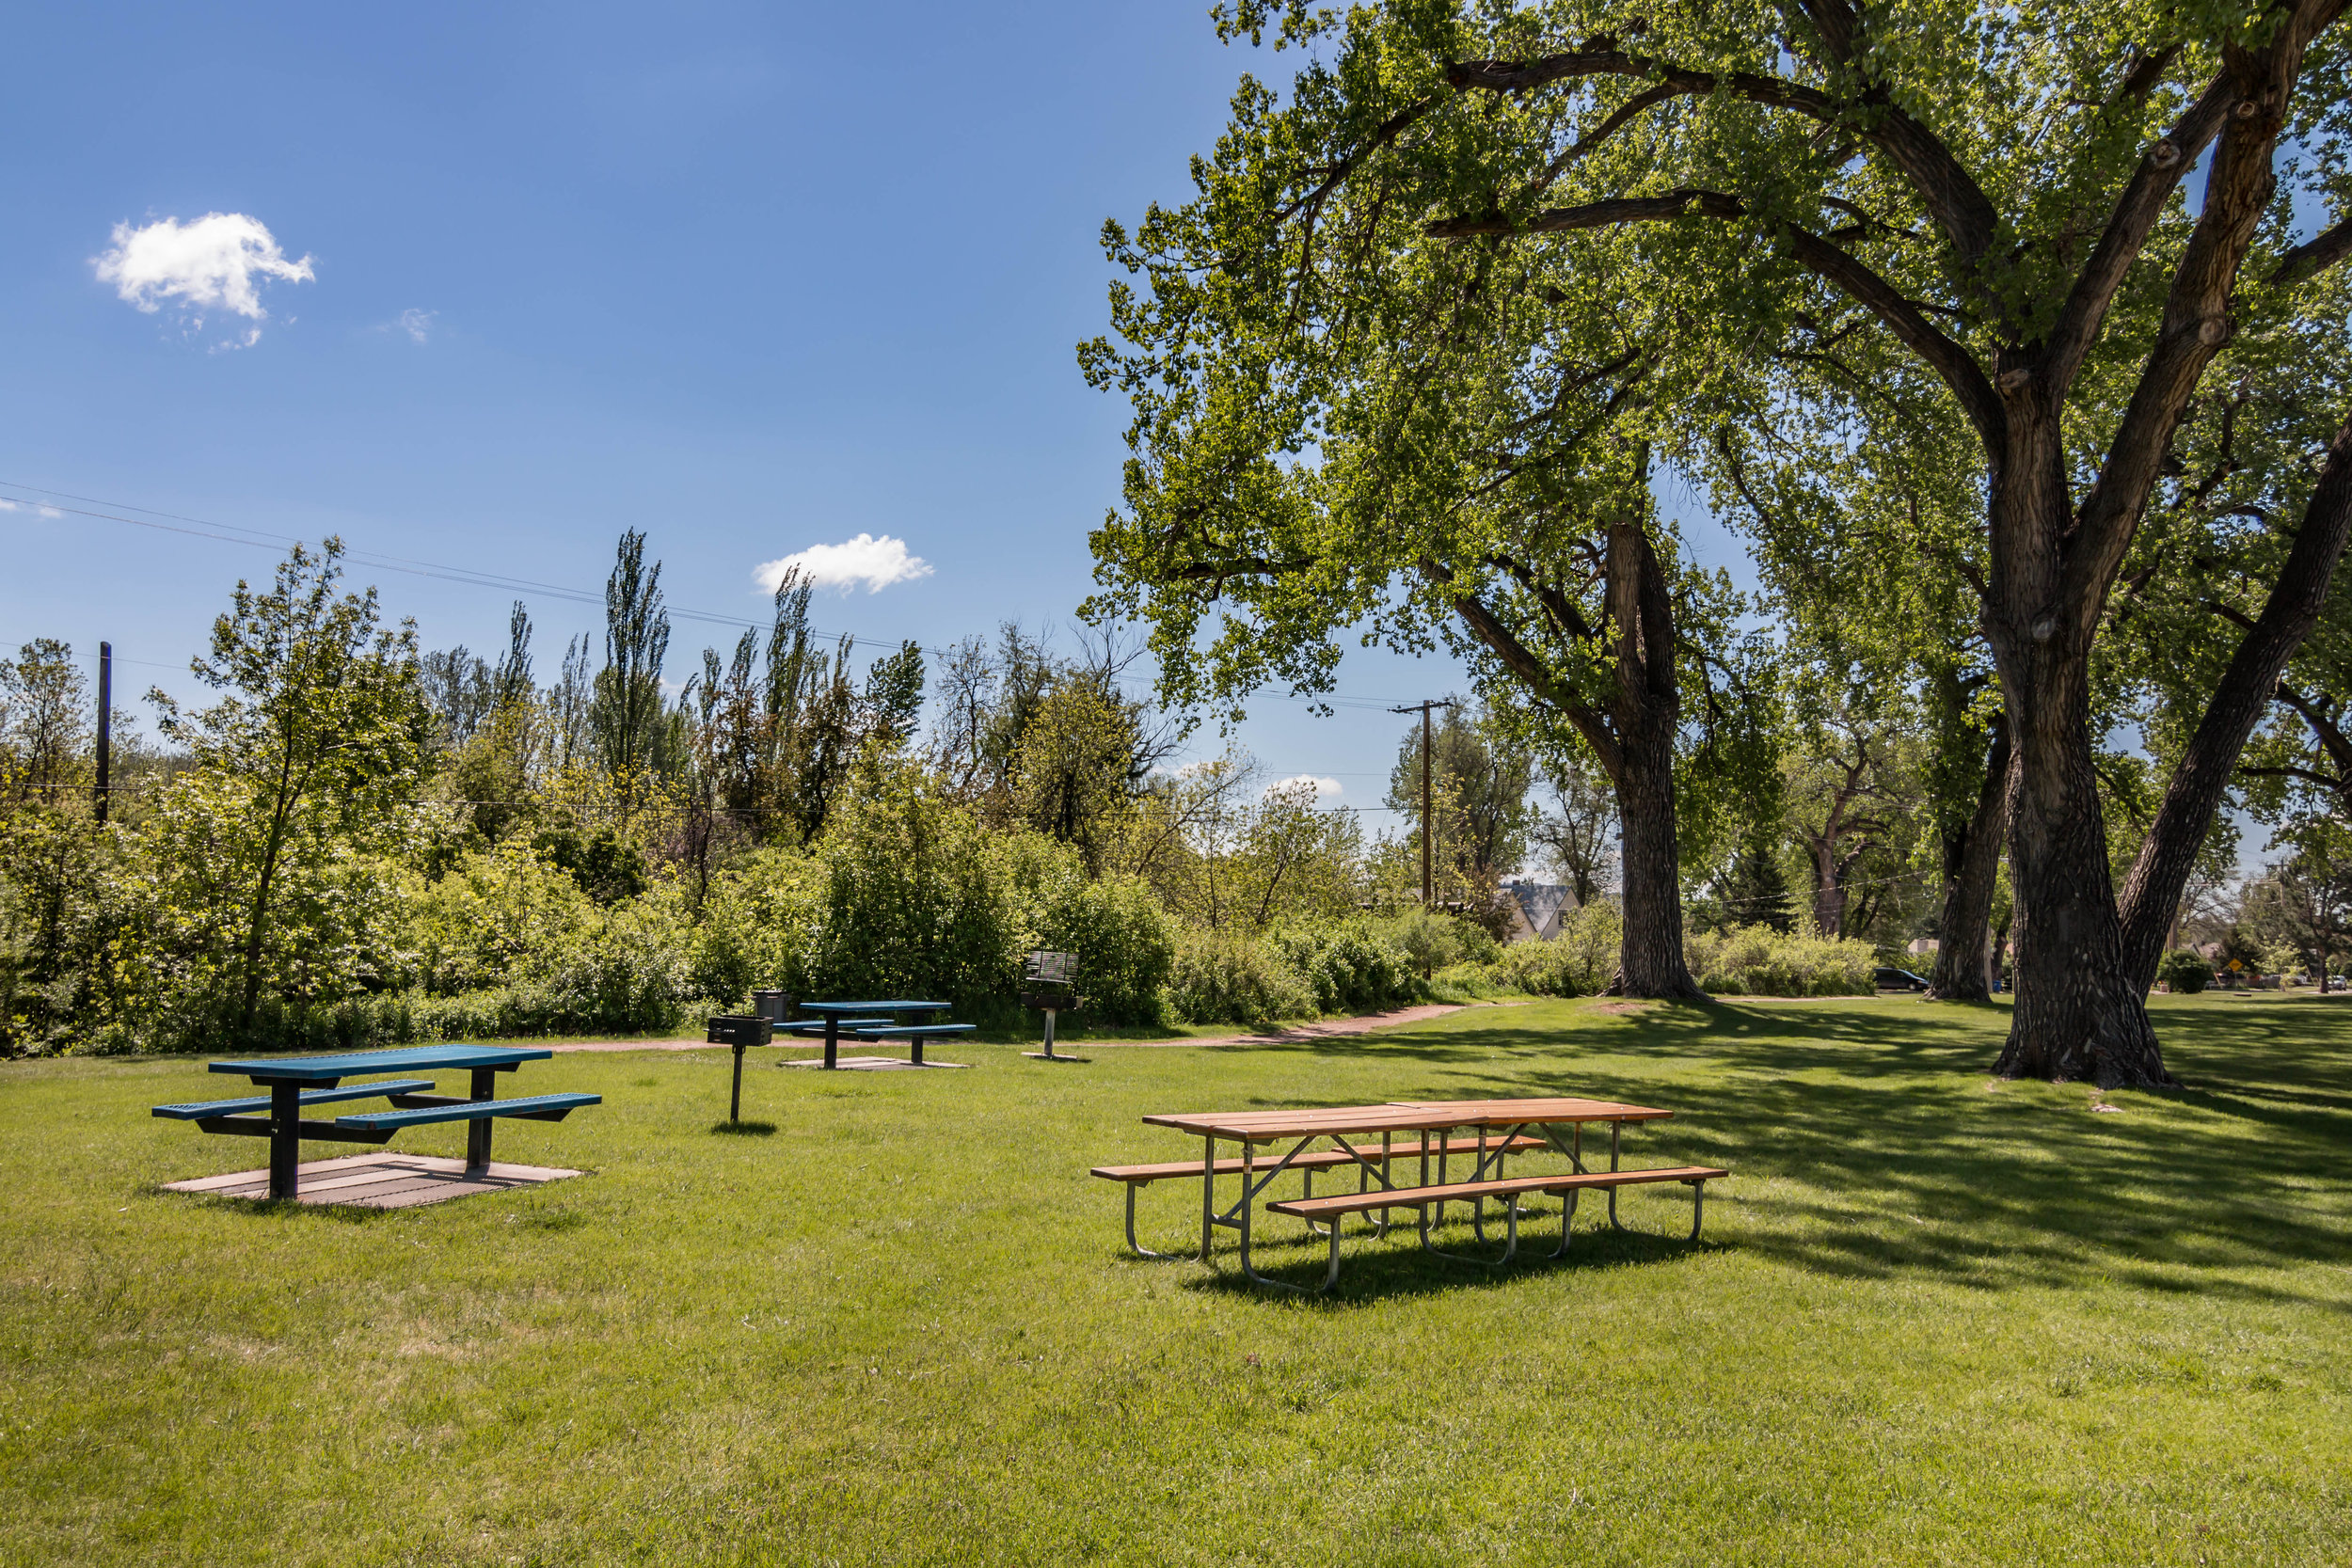 11-The Park Provides Pinic Area for an Perfect Lunch Outdoors.jpg